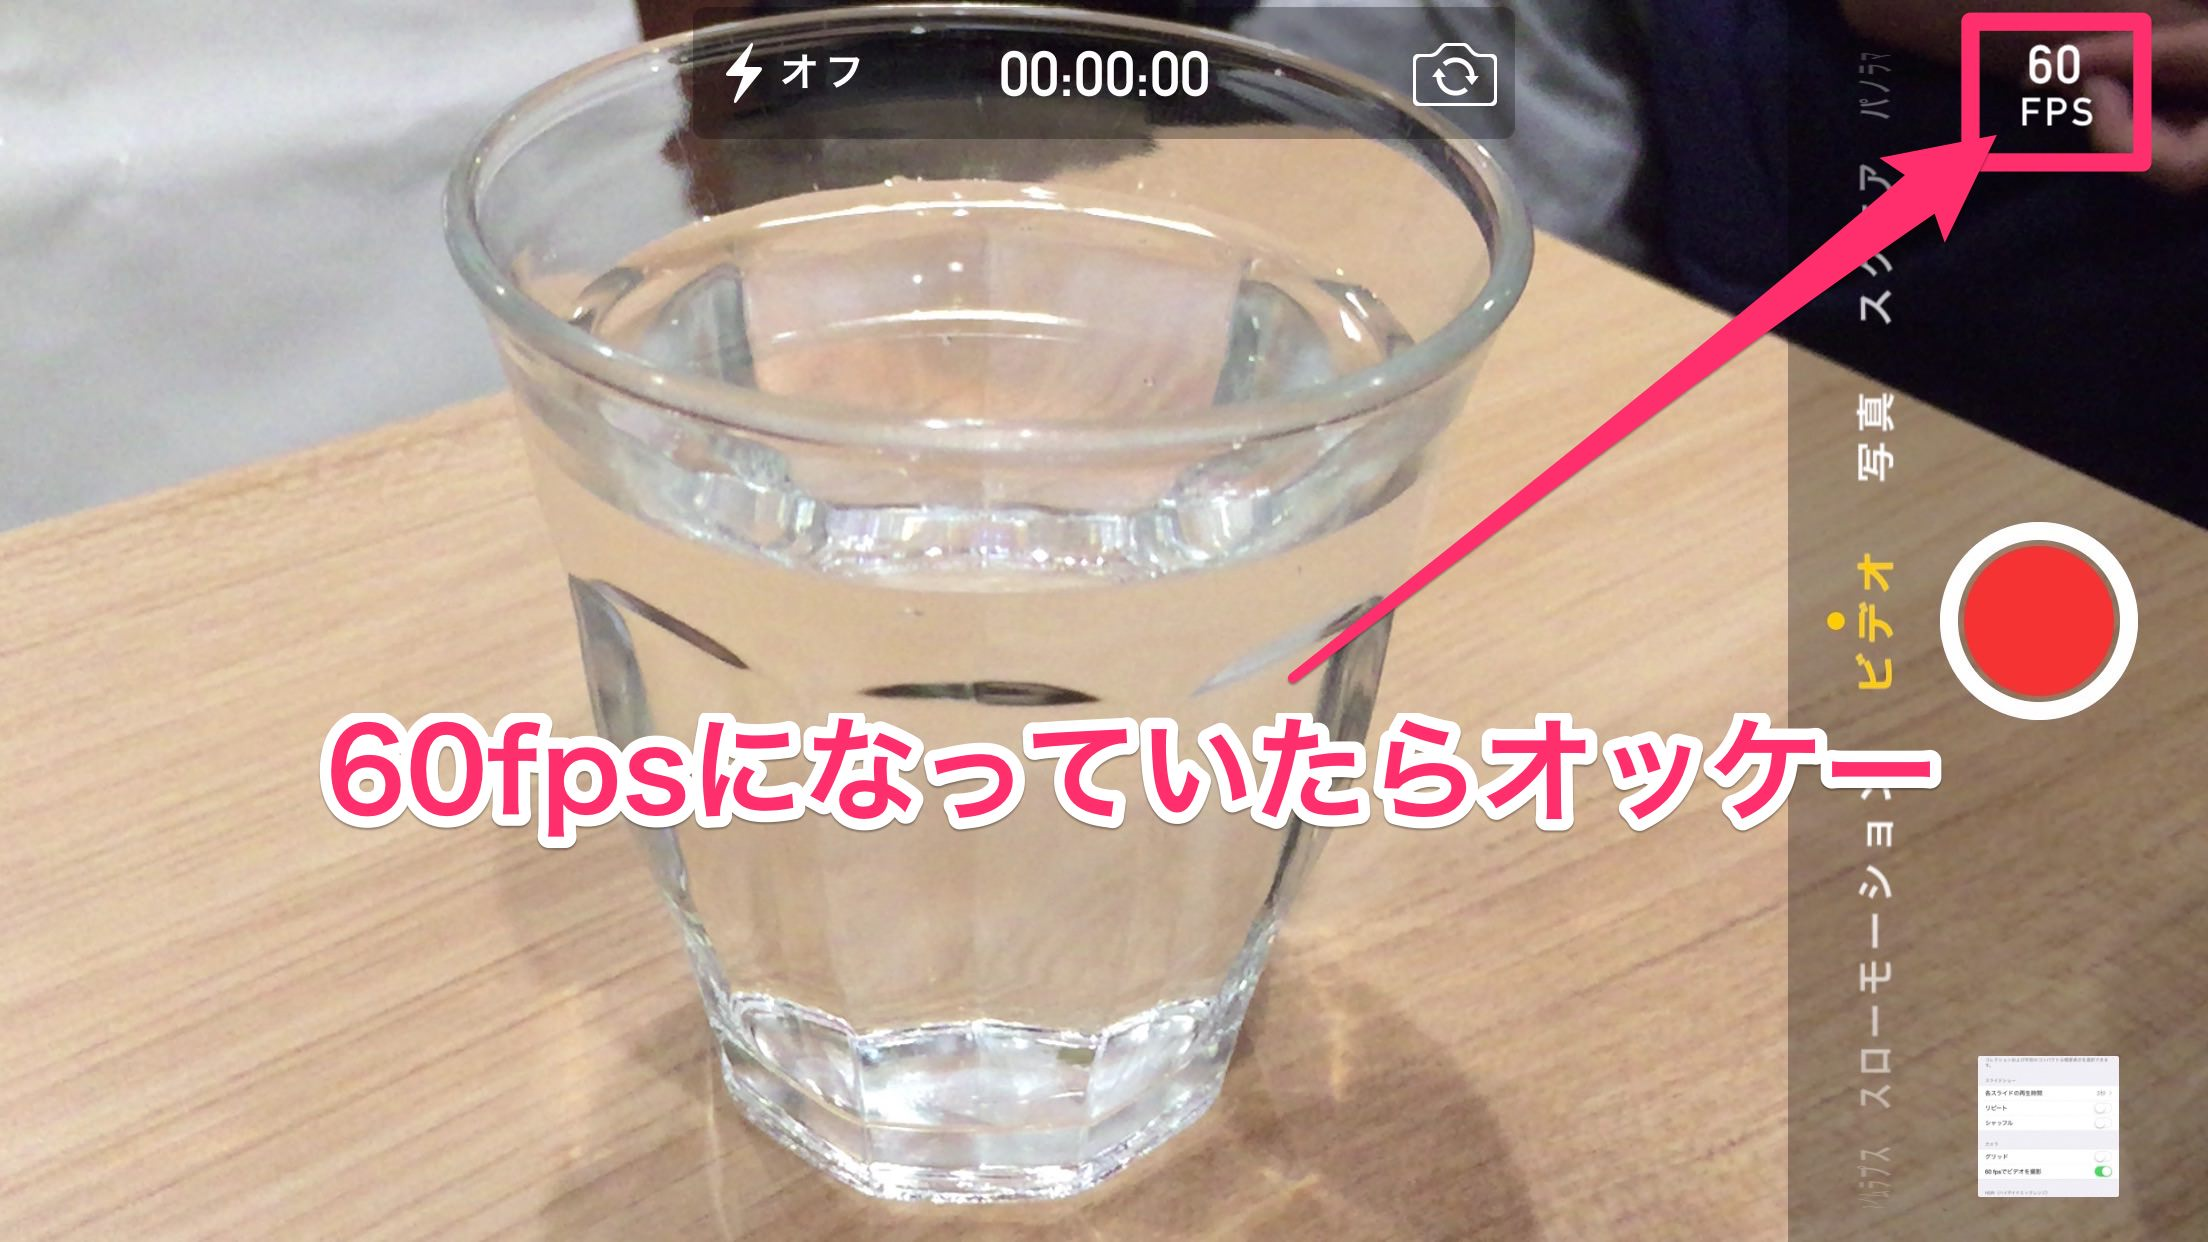 How to take 60fps video by iphone 03